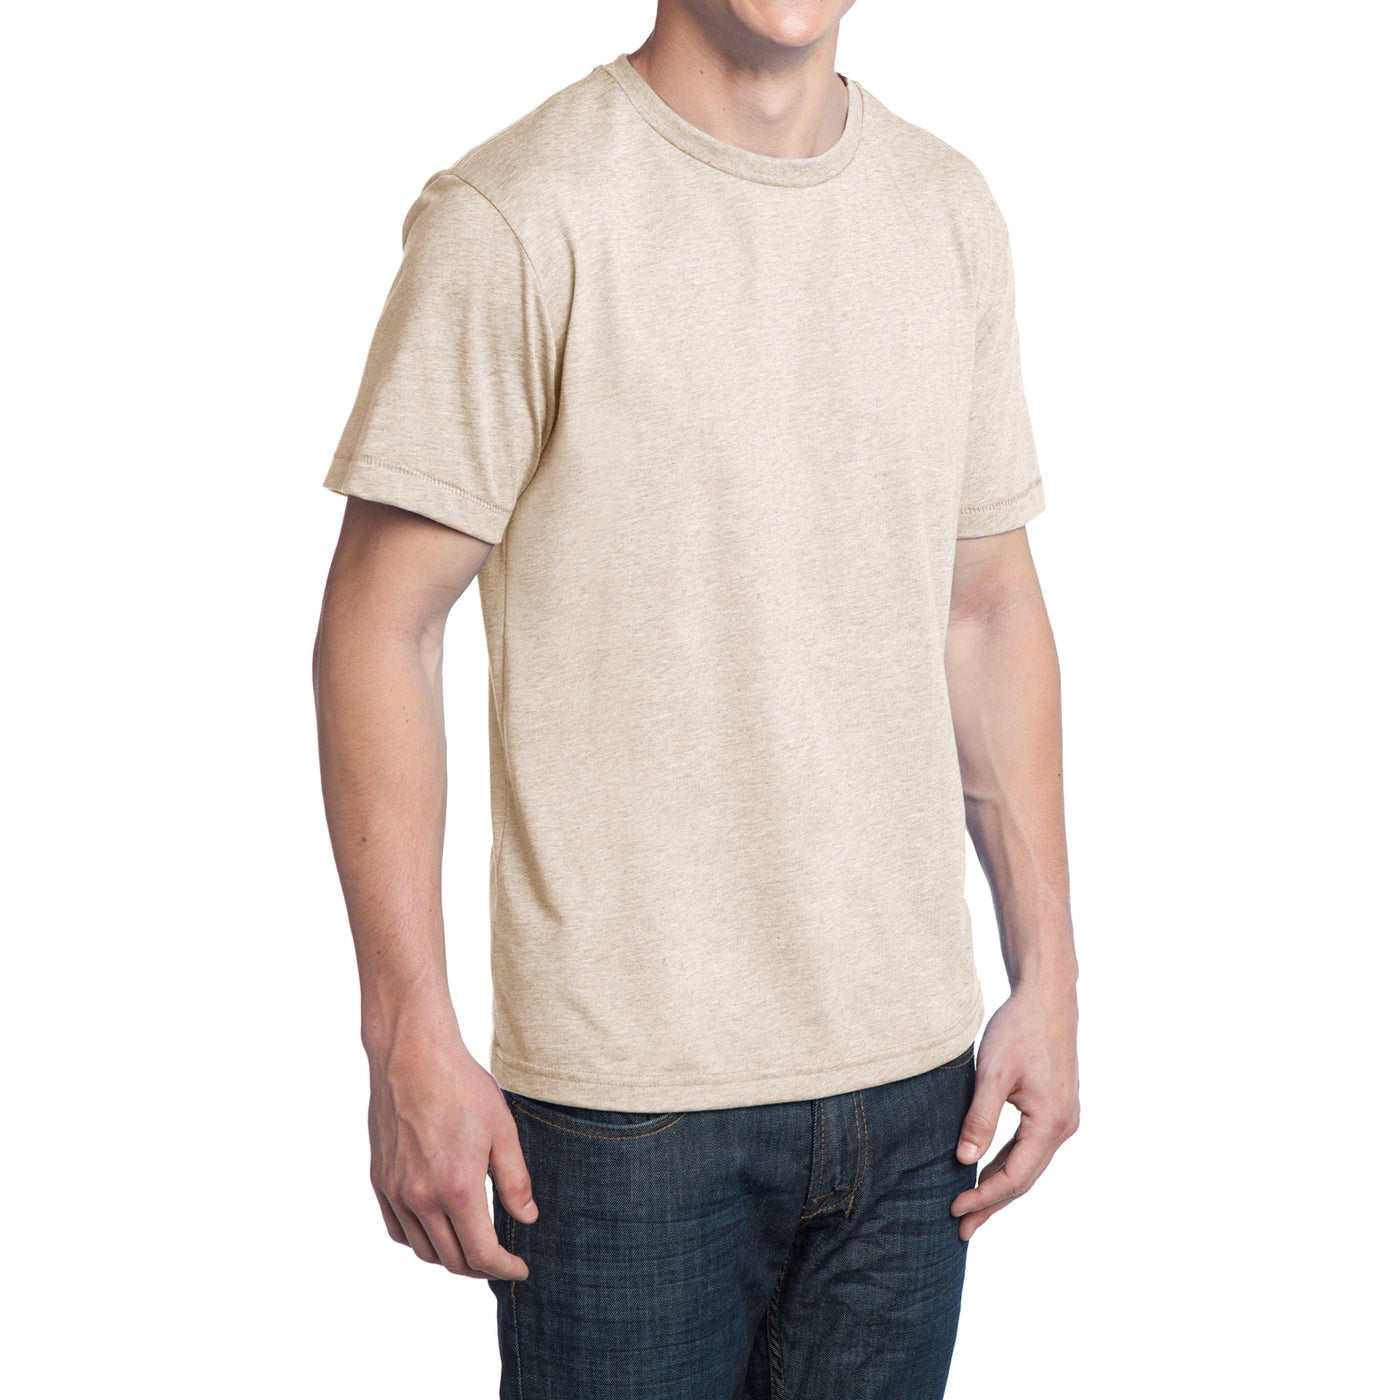 Men's Young Tri-Blend Crewneck Tee - Natural Heather